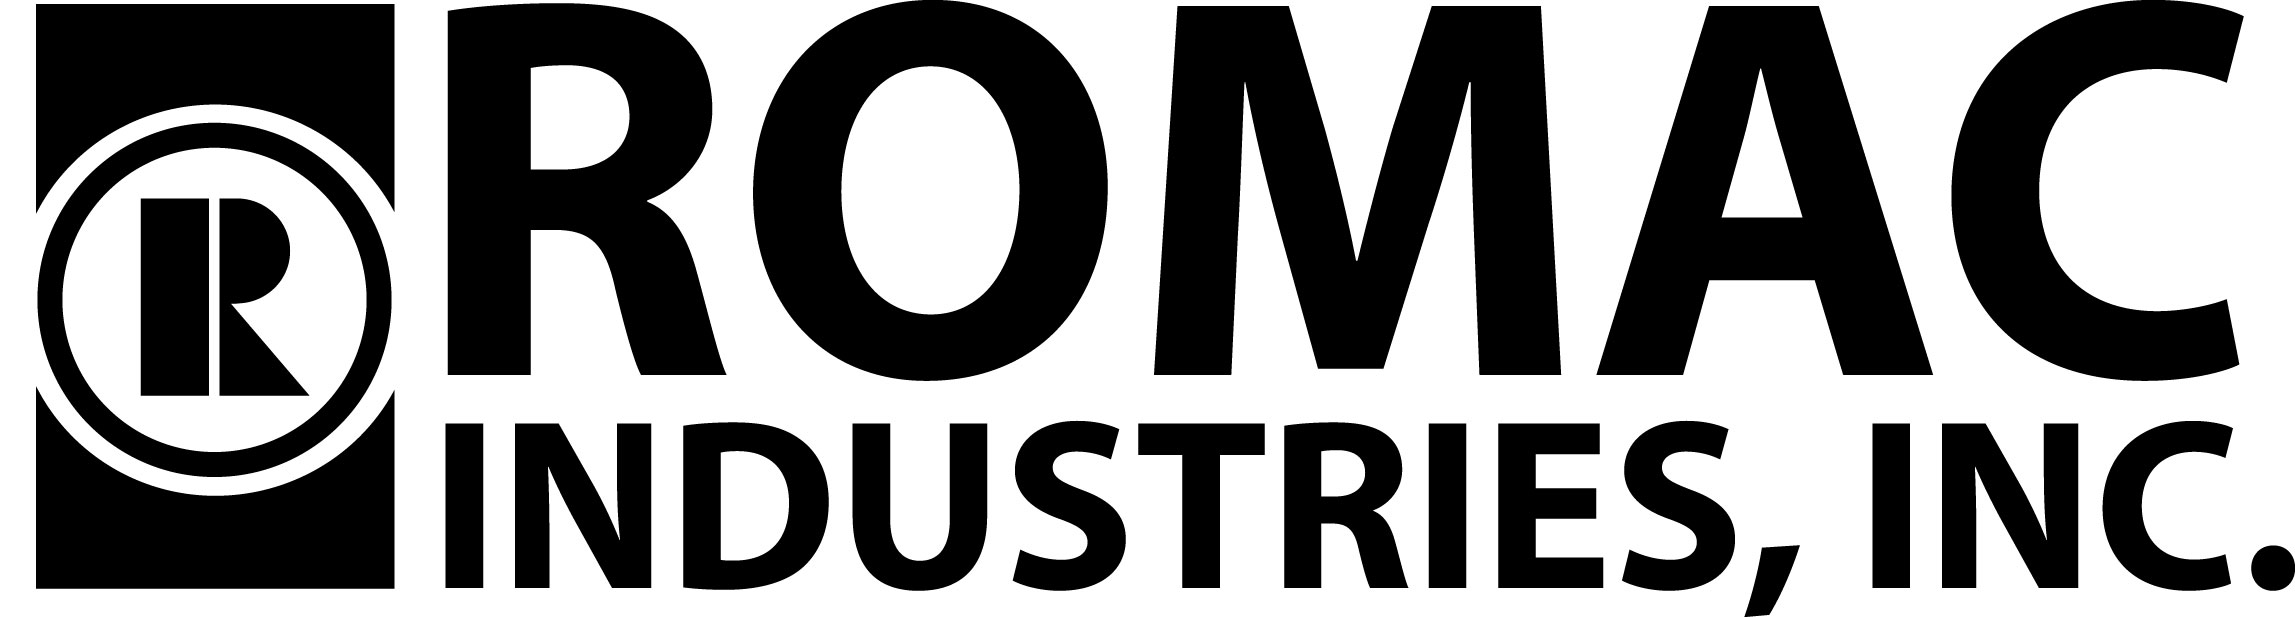 Romac Industries logo